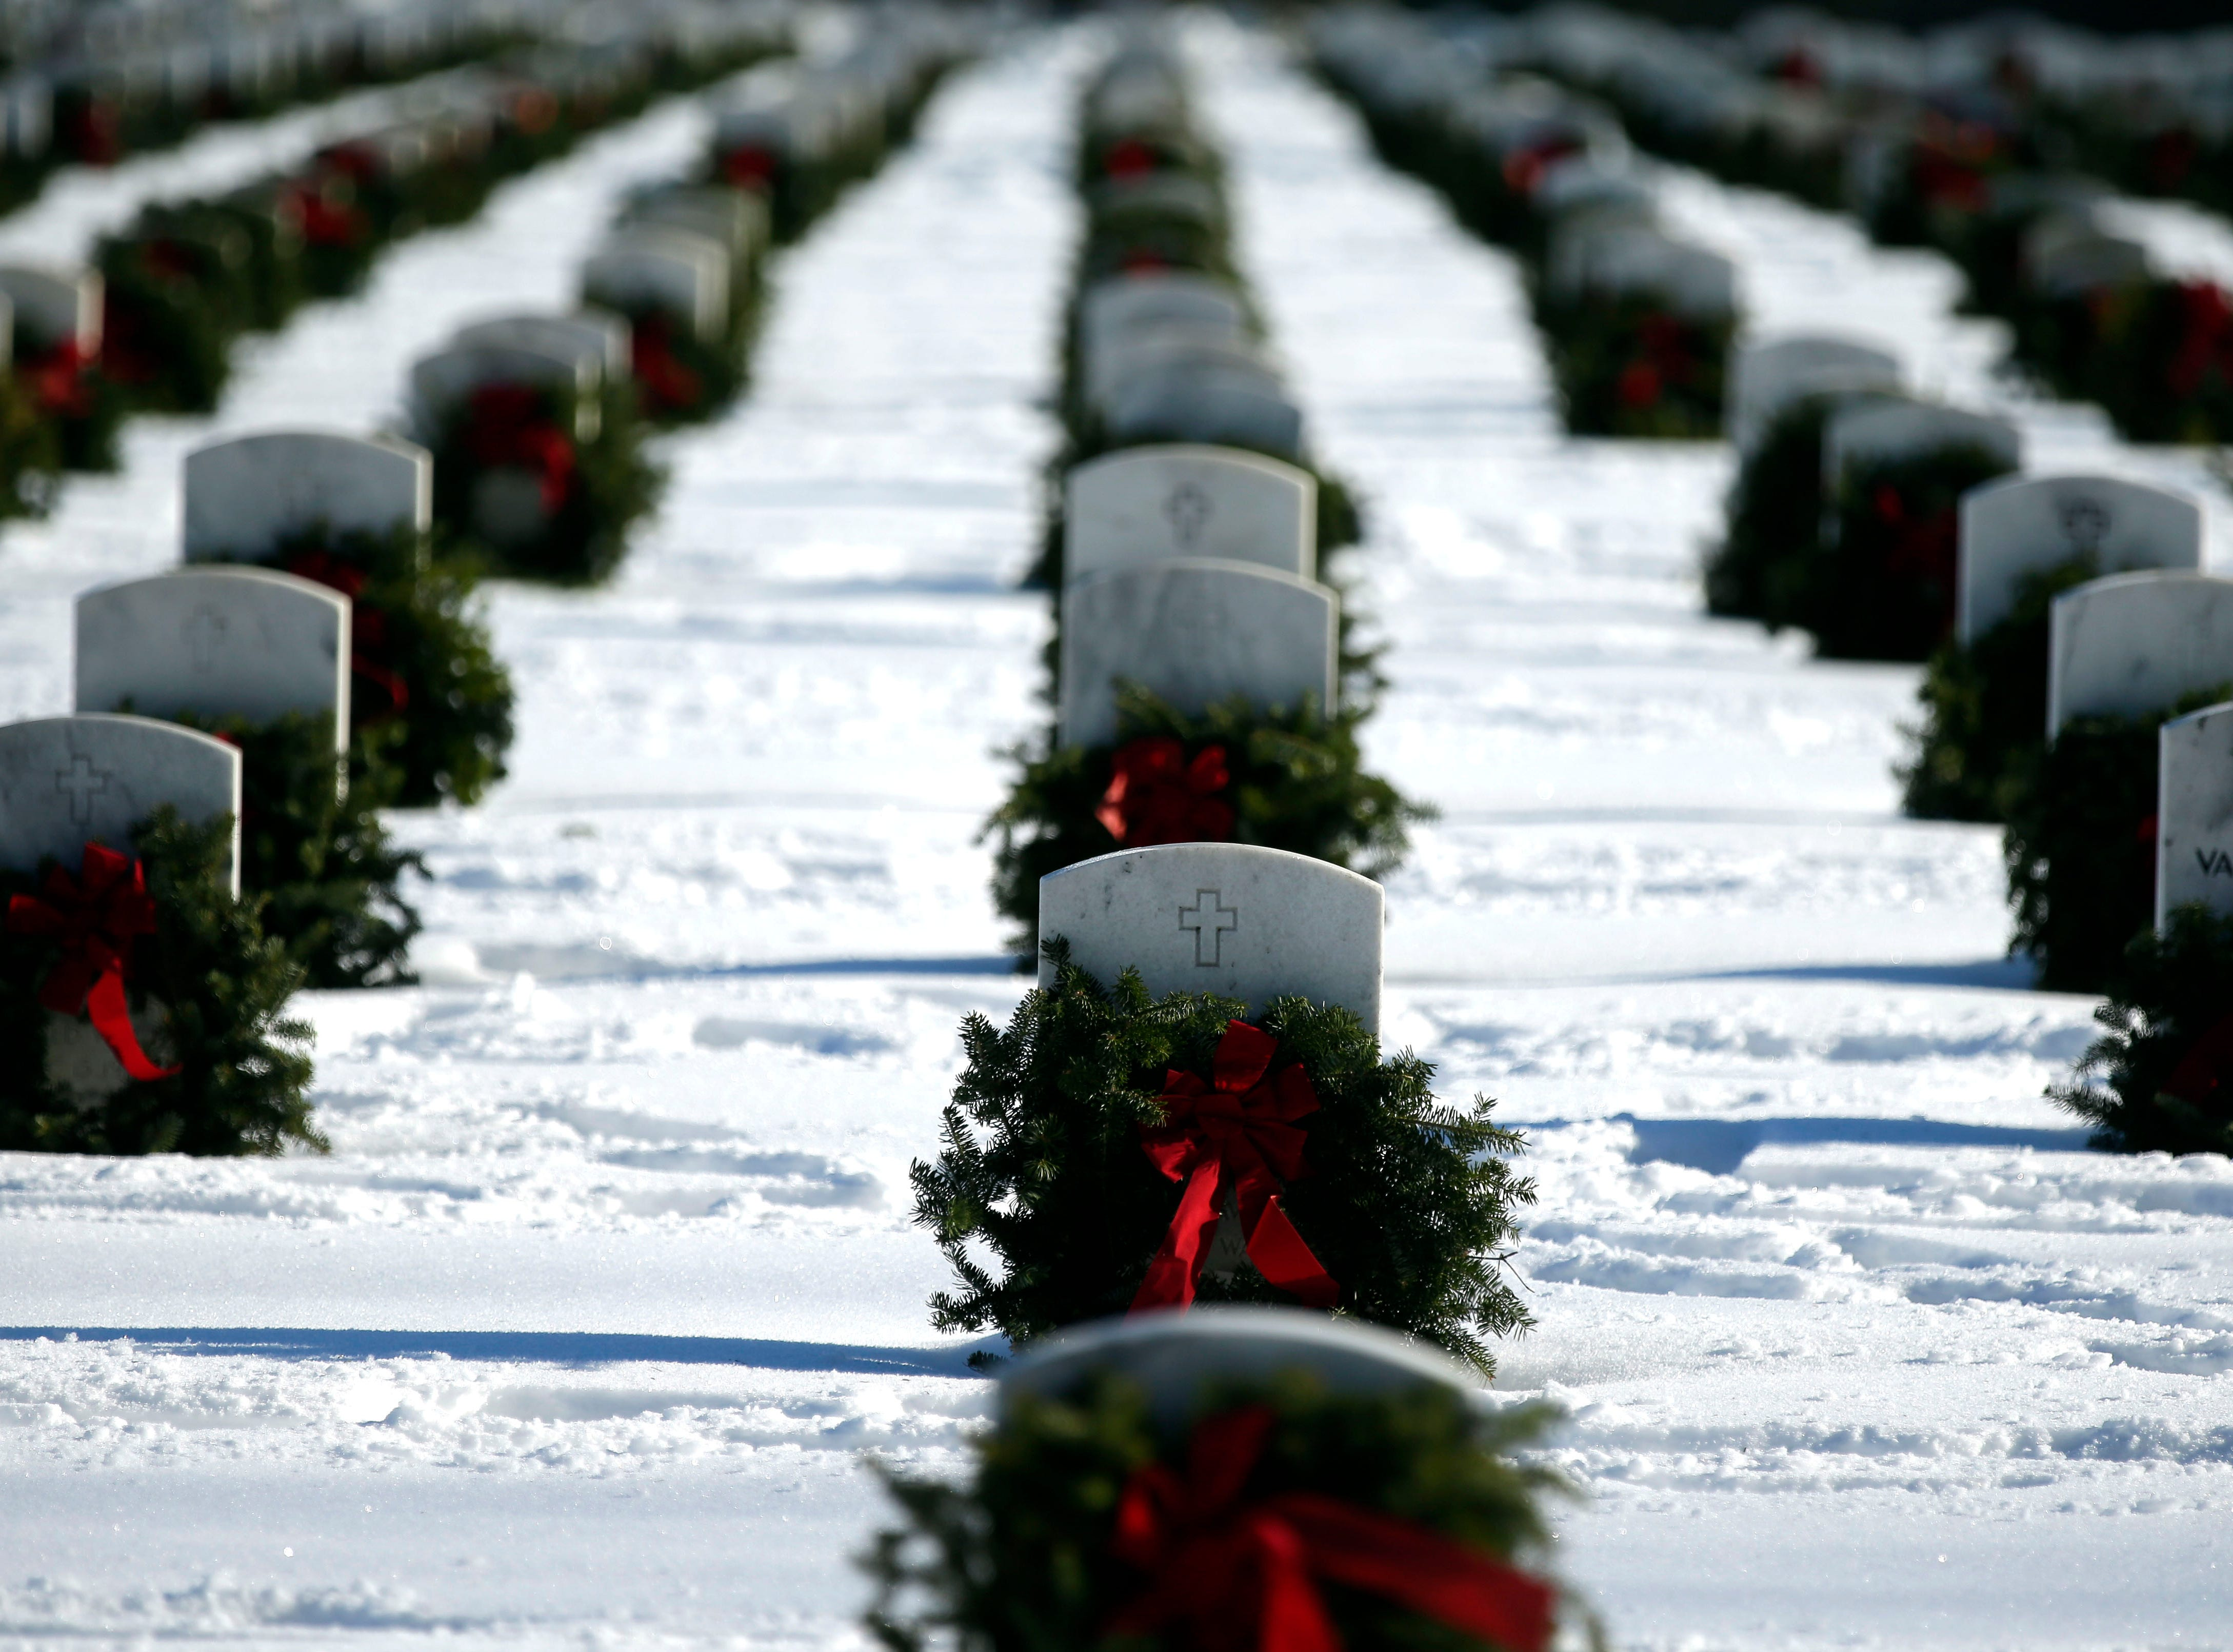 Wreaths decorate headstones as part of Wreaths Across America Day at the Central Wisconsin Veterans Memorial Cemetery Saturday, December 15, 2018, in King, Wis. Over 7000 graves at King were honored with wreaths. Over 1400 other locations took part in the coordinated ceremony.